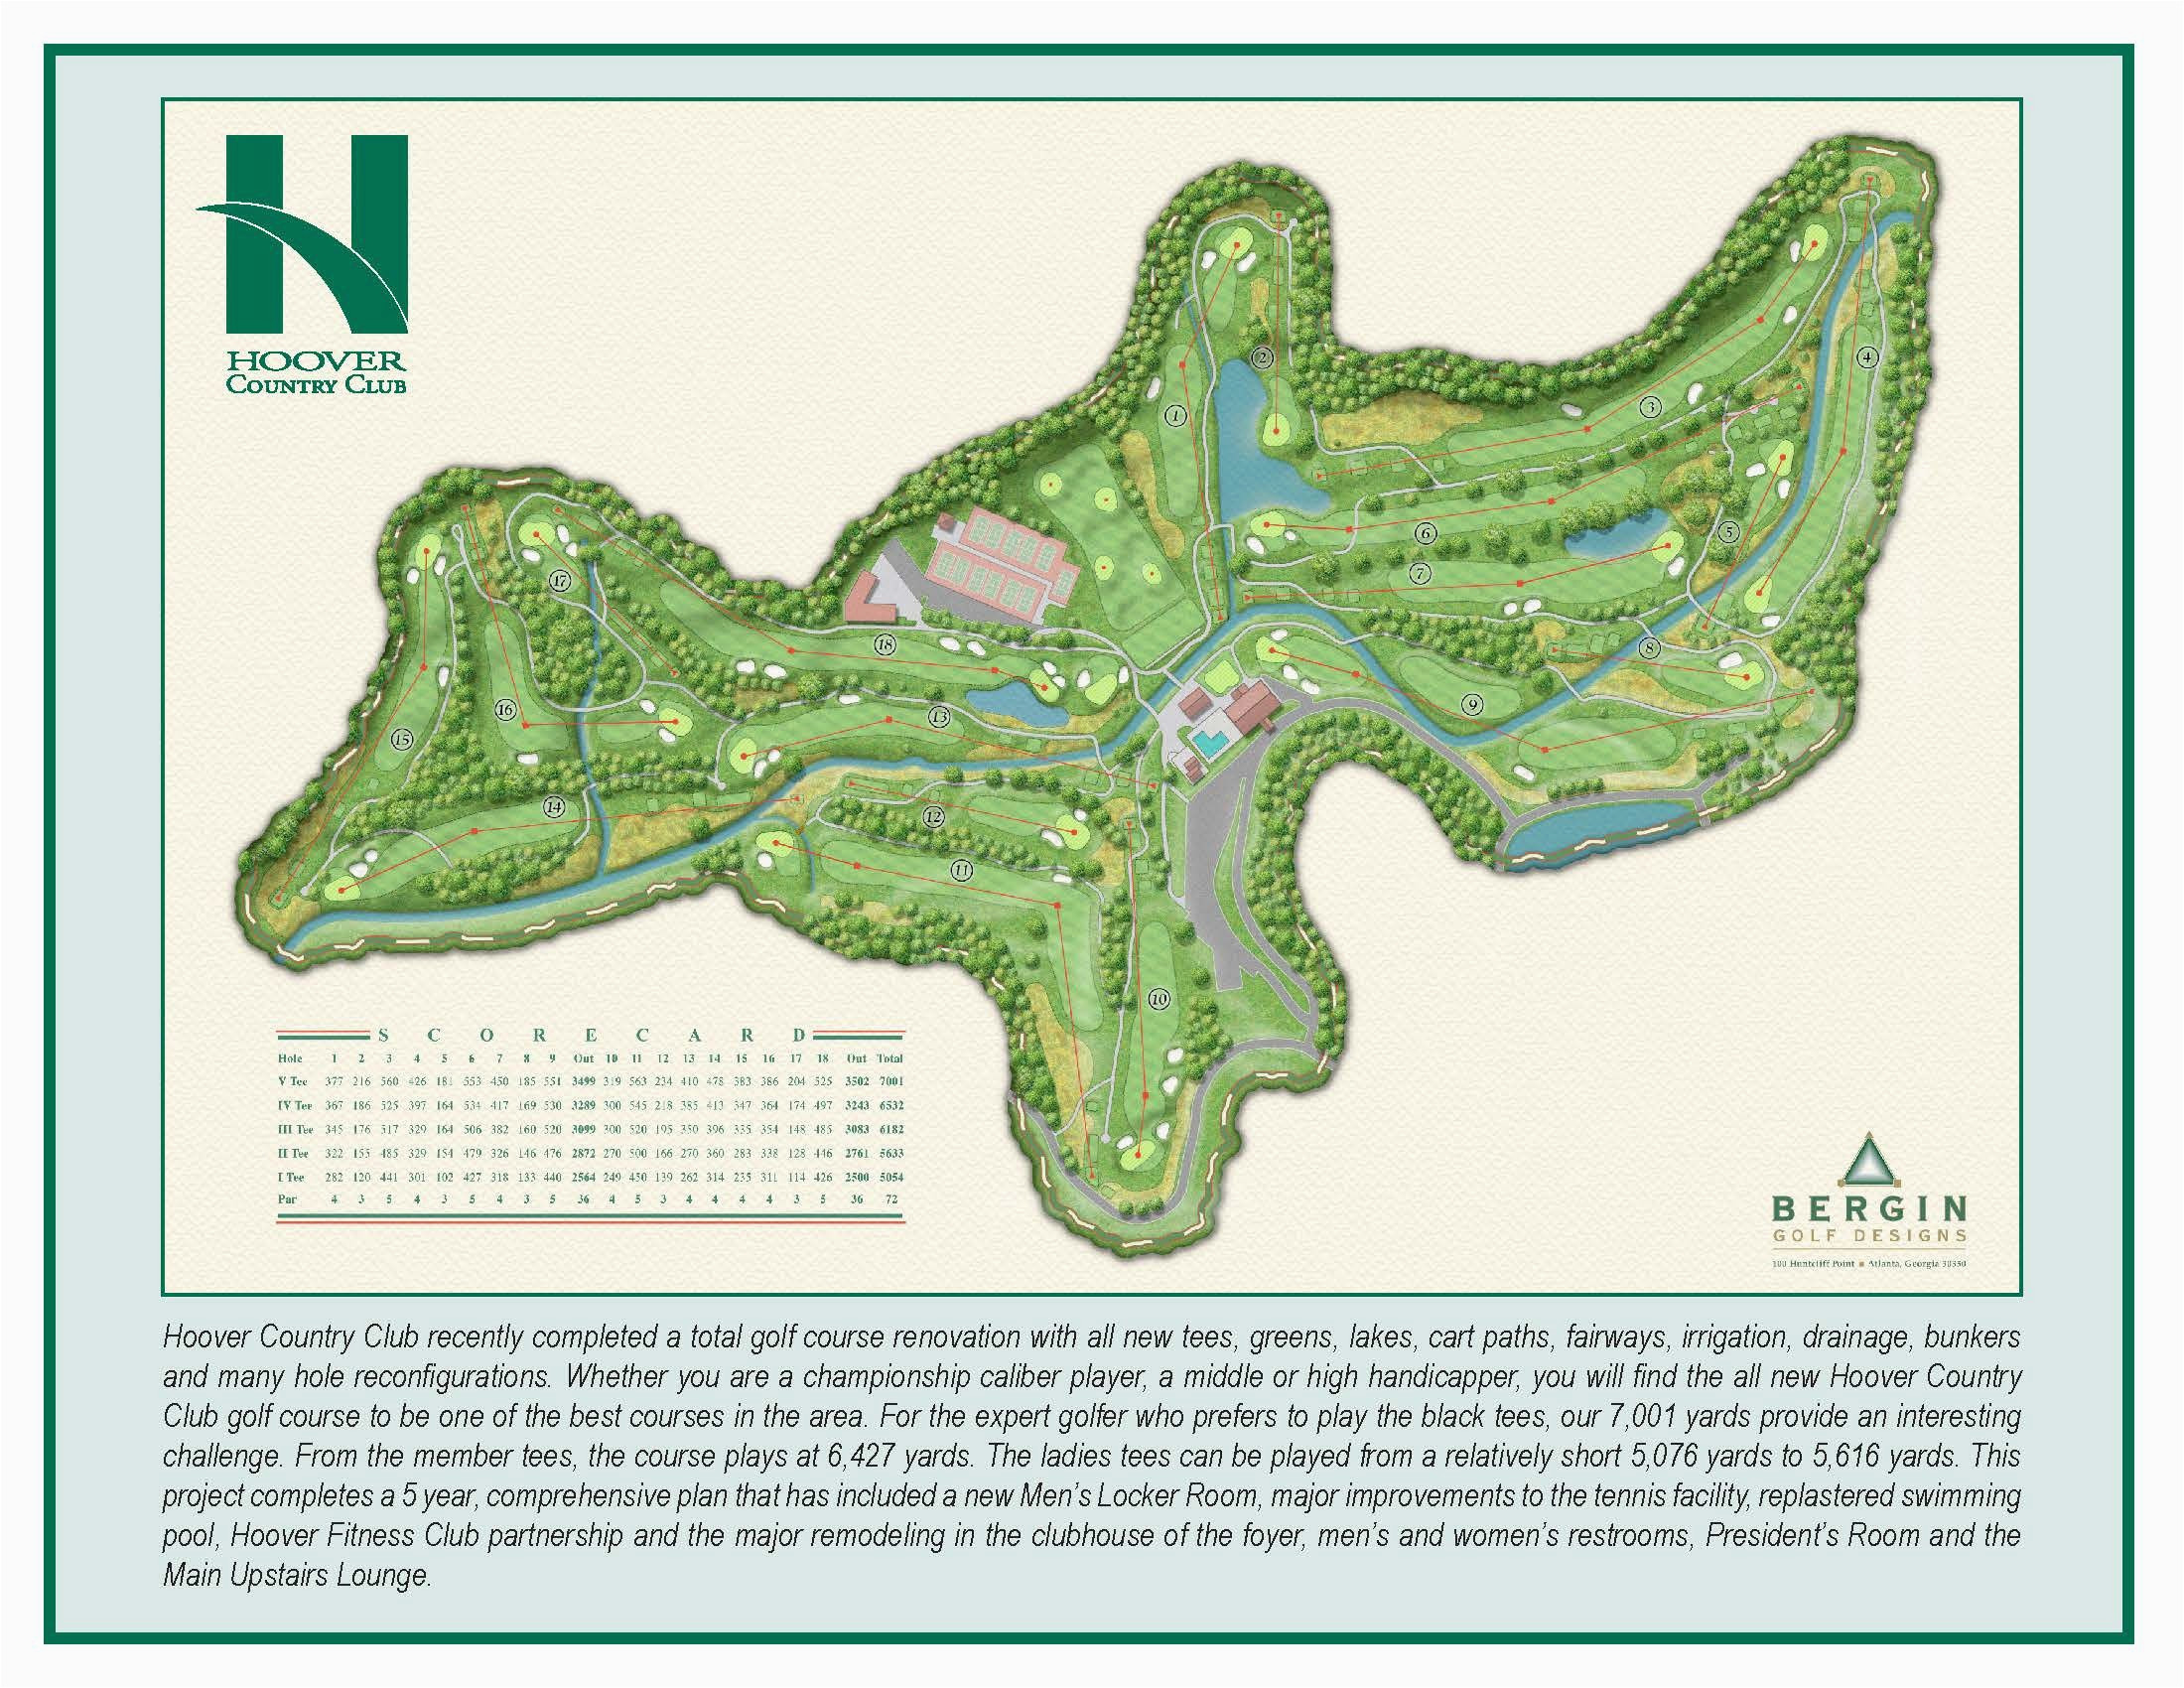 hoover country club course map hcc golf our beautiful country